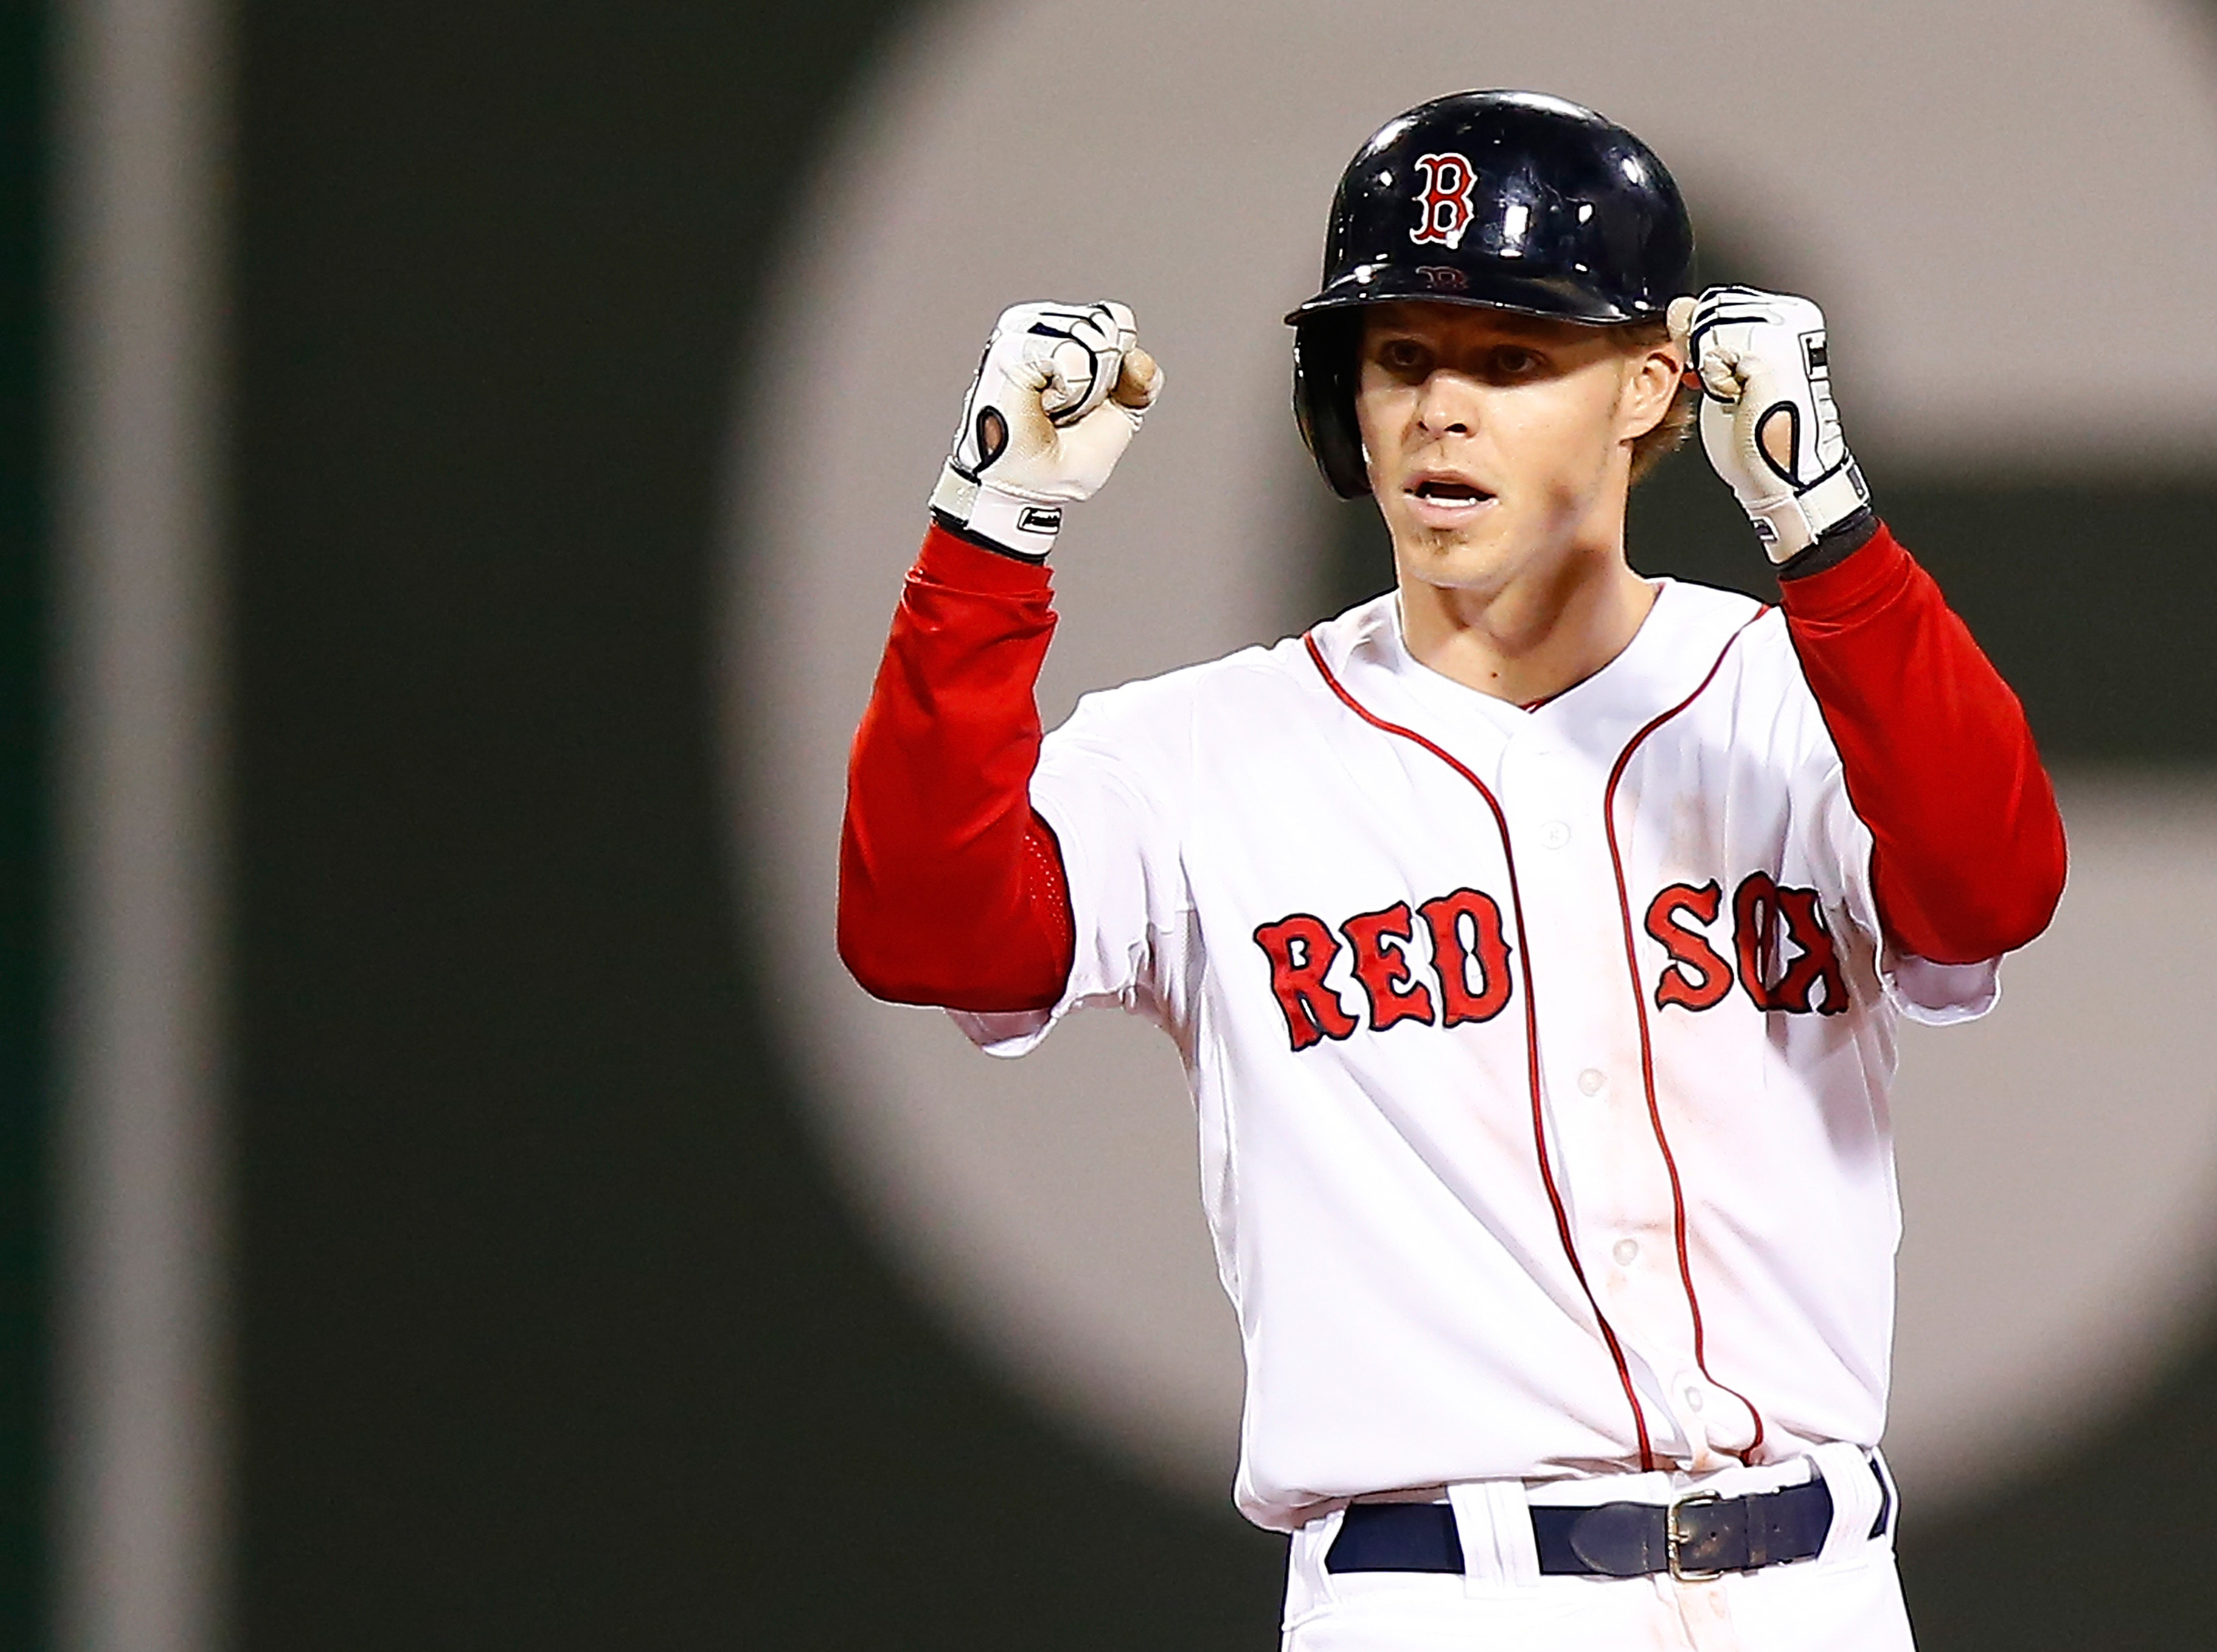 Brock_holt_medium